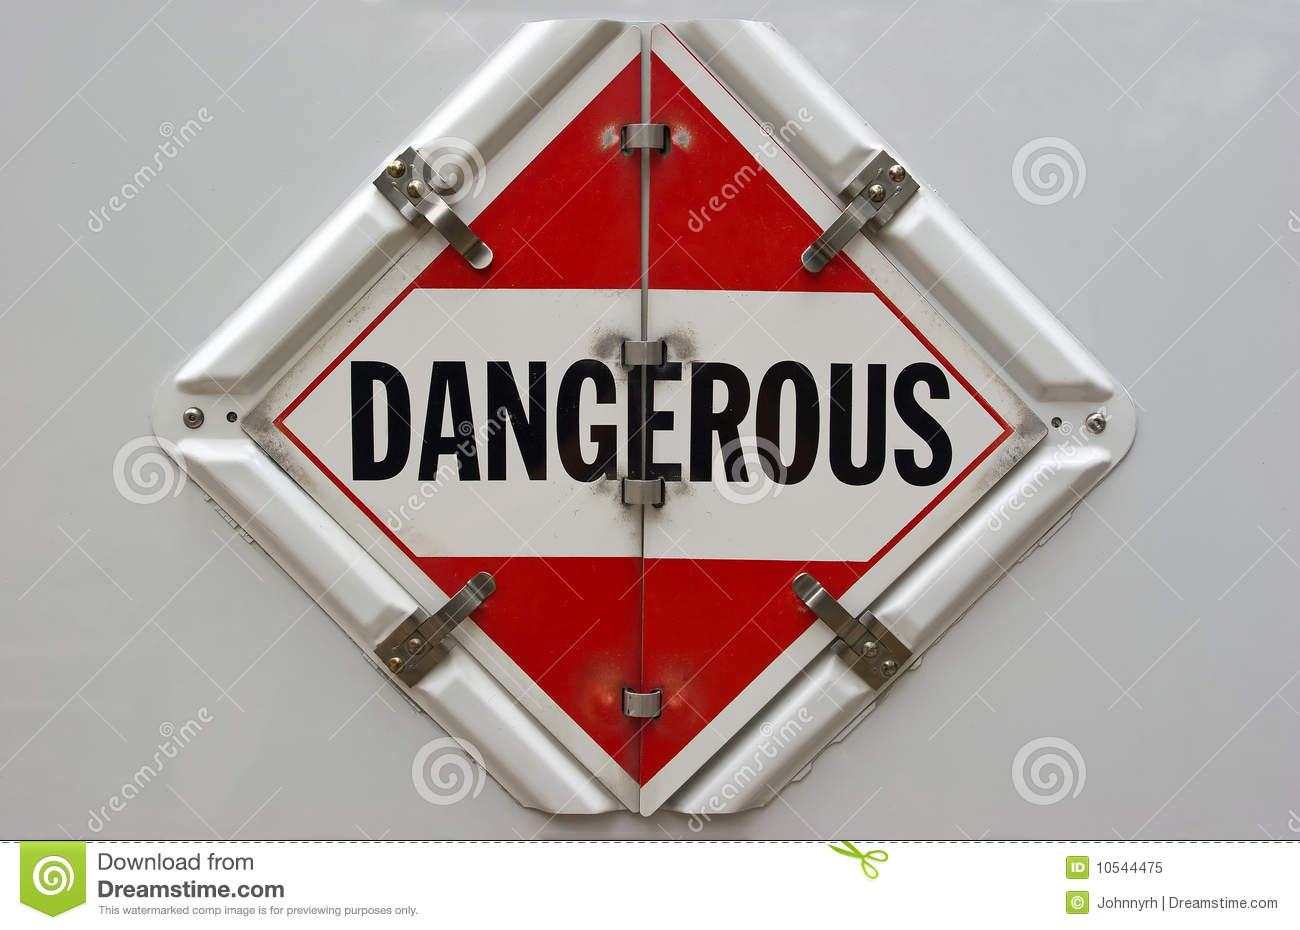 Dangerous Placard Royalty Free Stock Photo - Image: 10544475